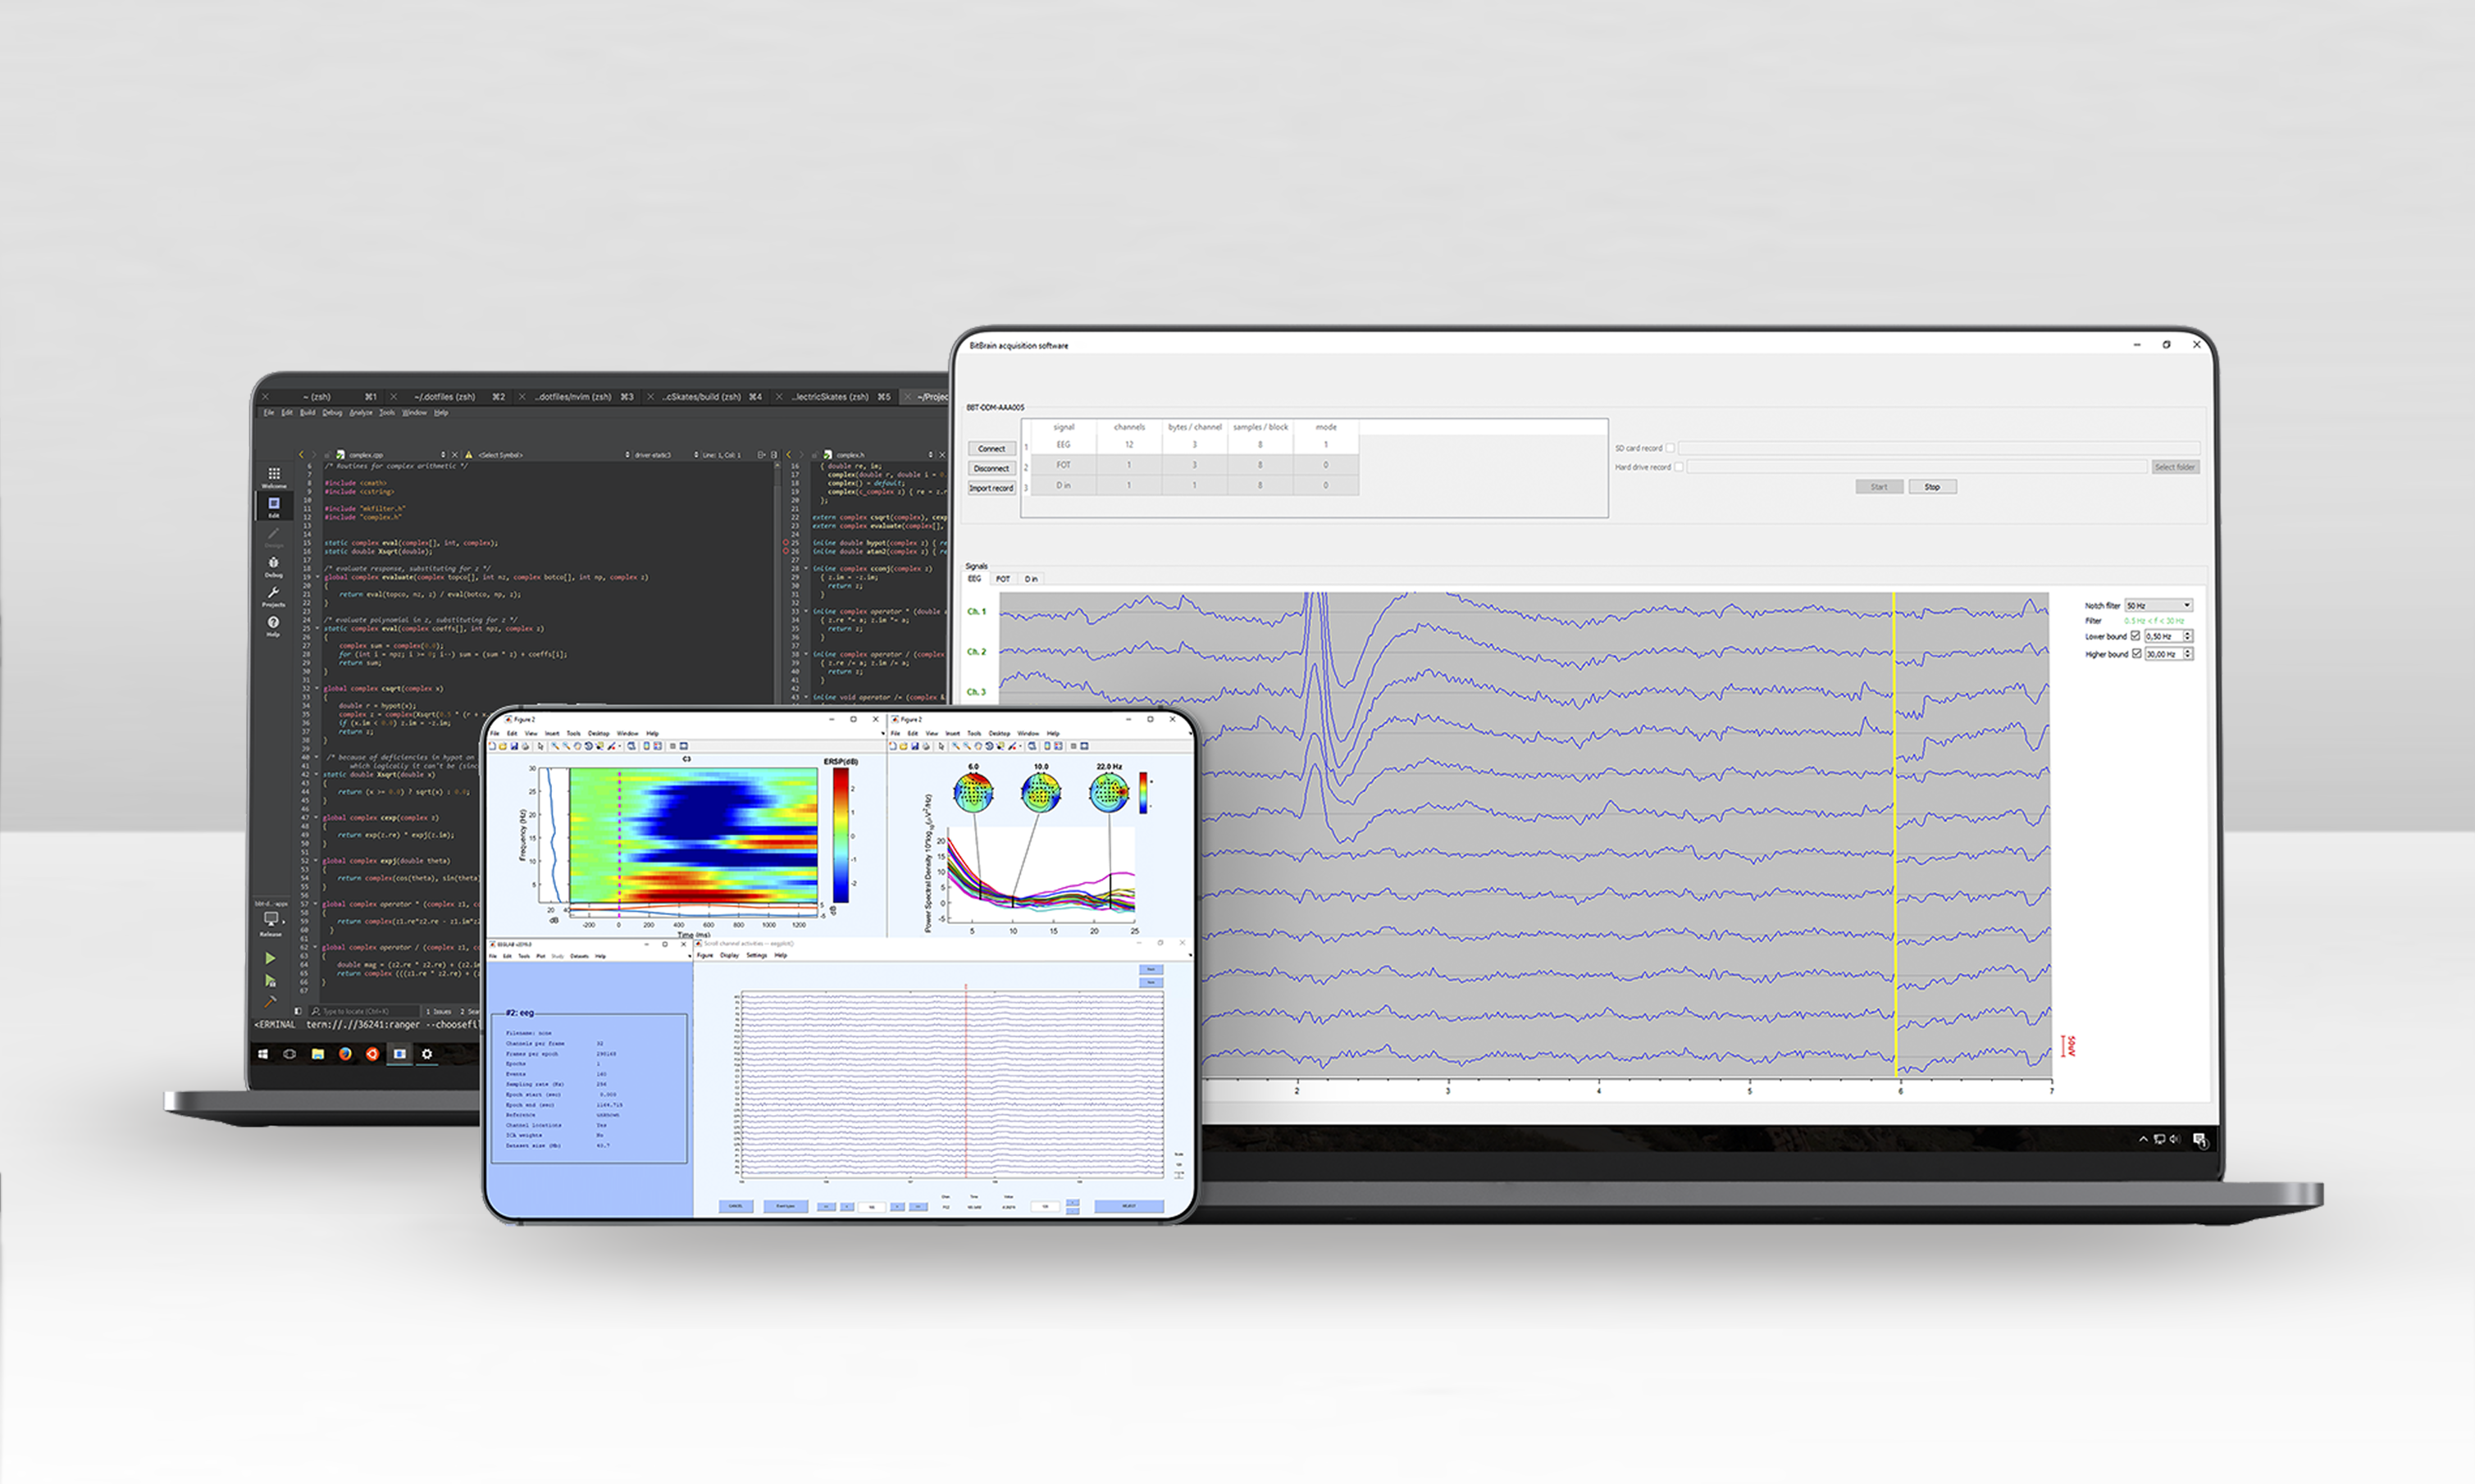 software for eeg monitoring and raw data visualization in real time